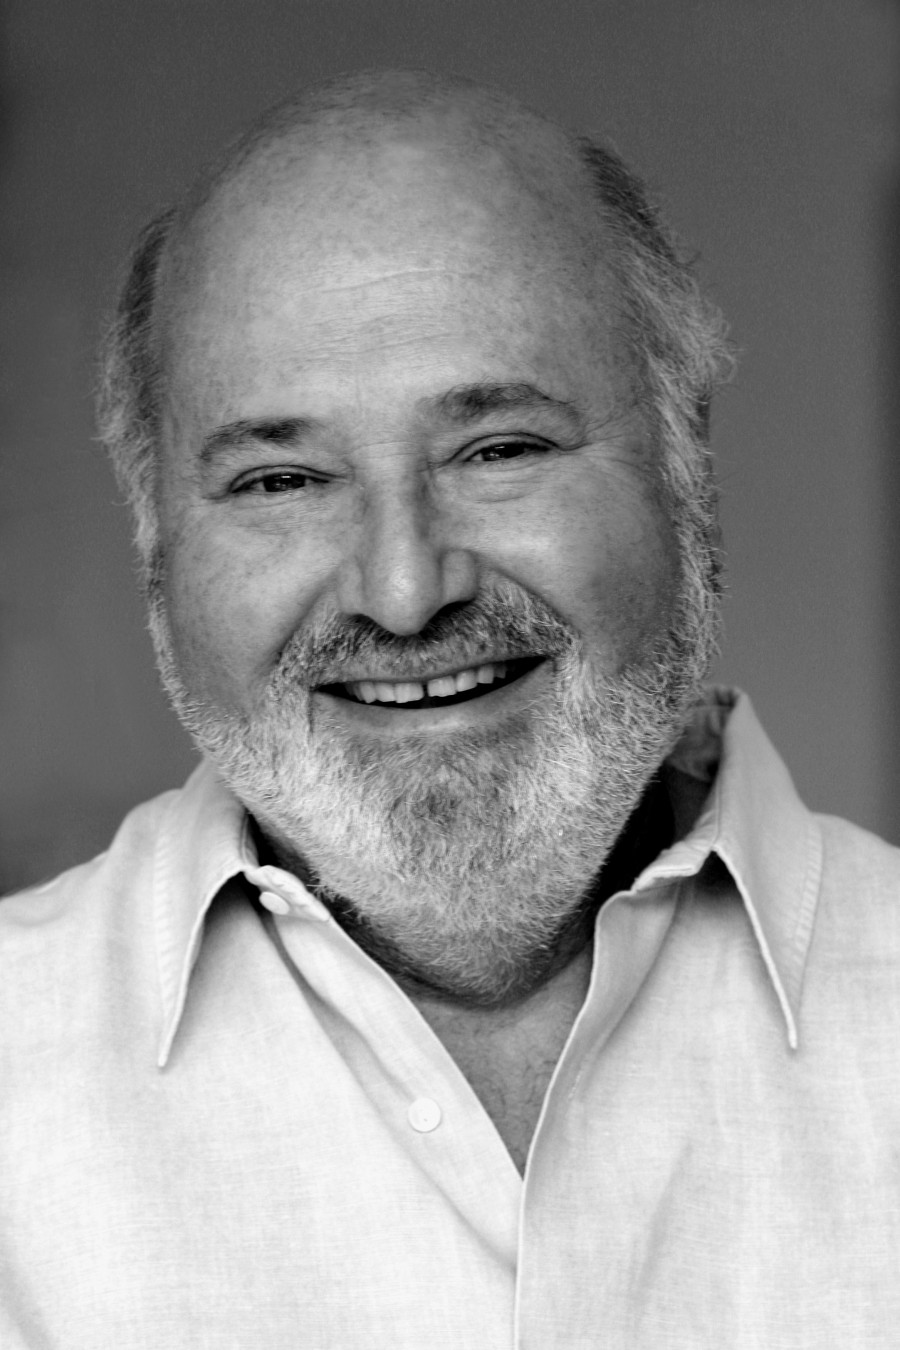 Rob Reiner interview by Pamela Price - LATF USA